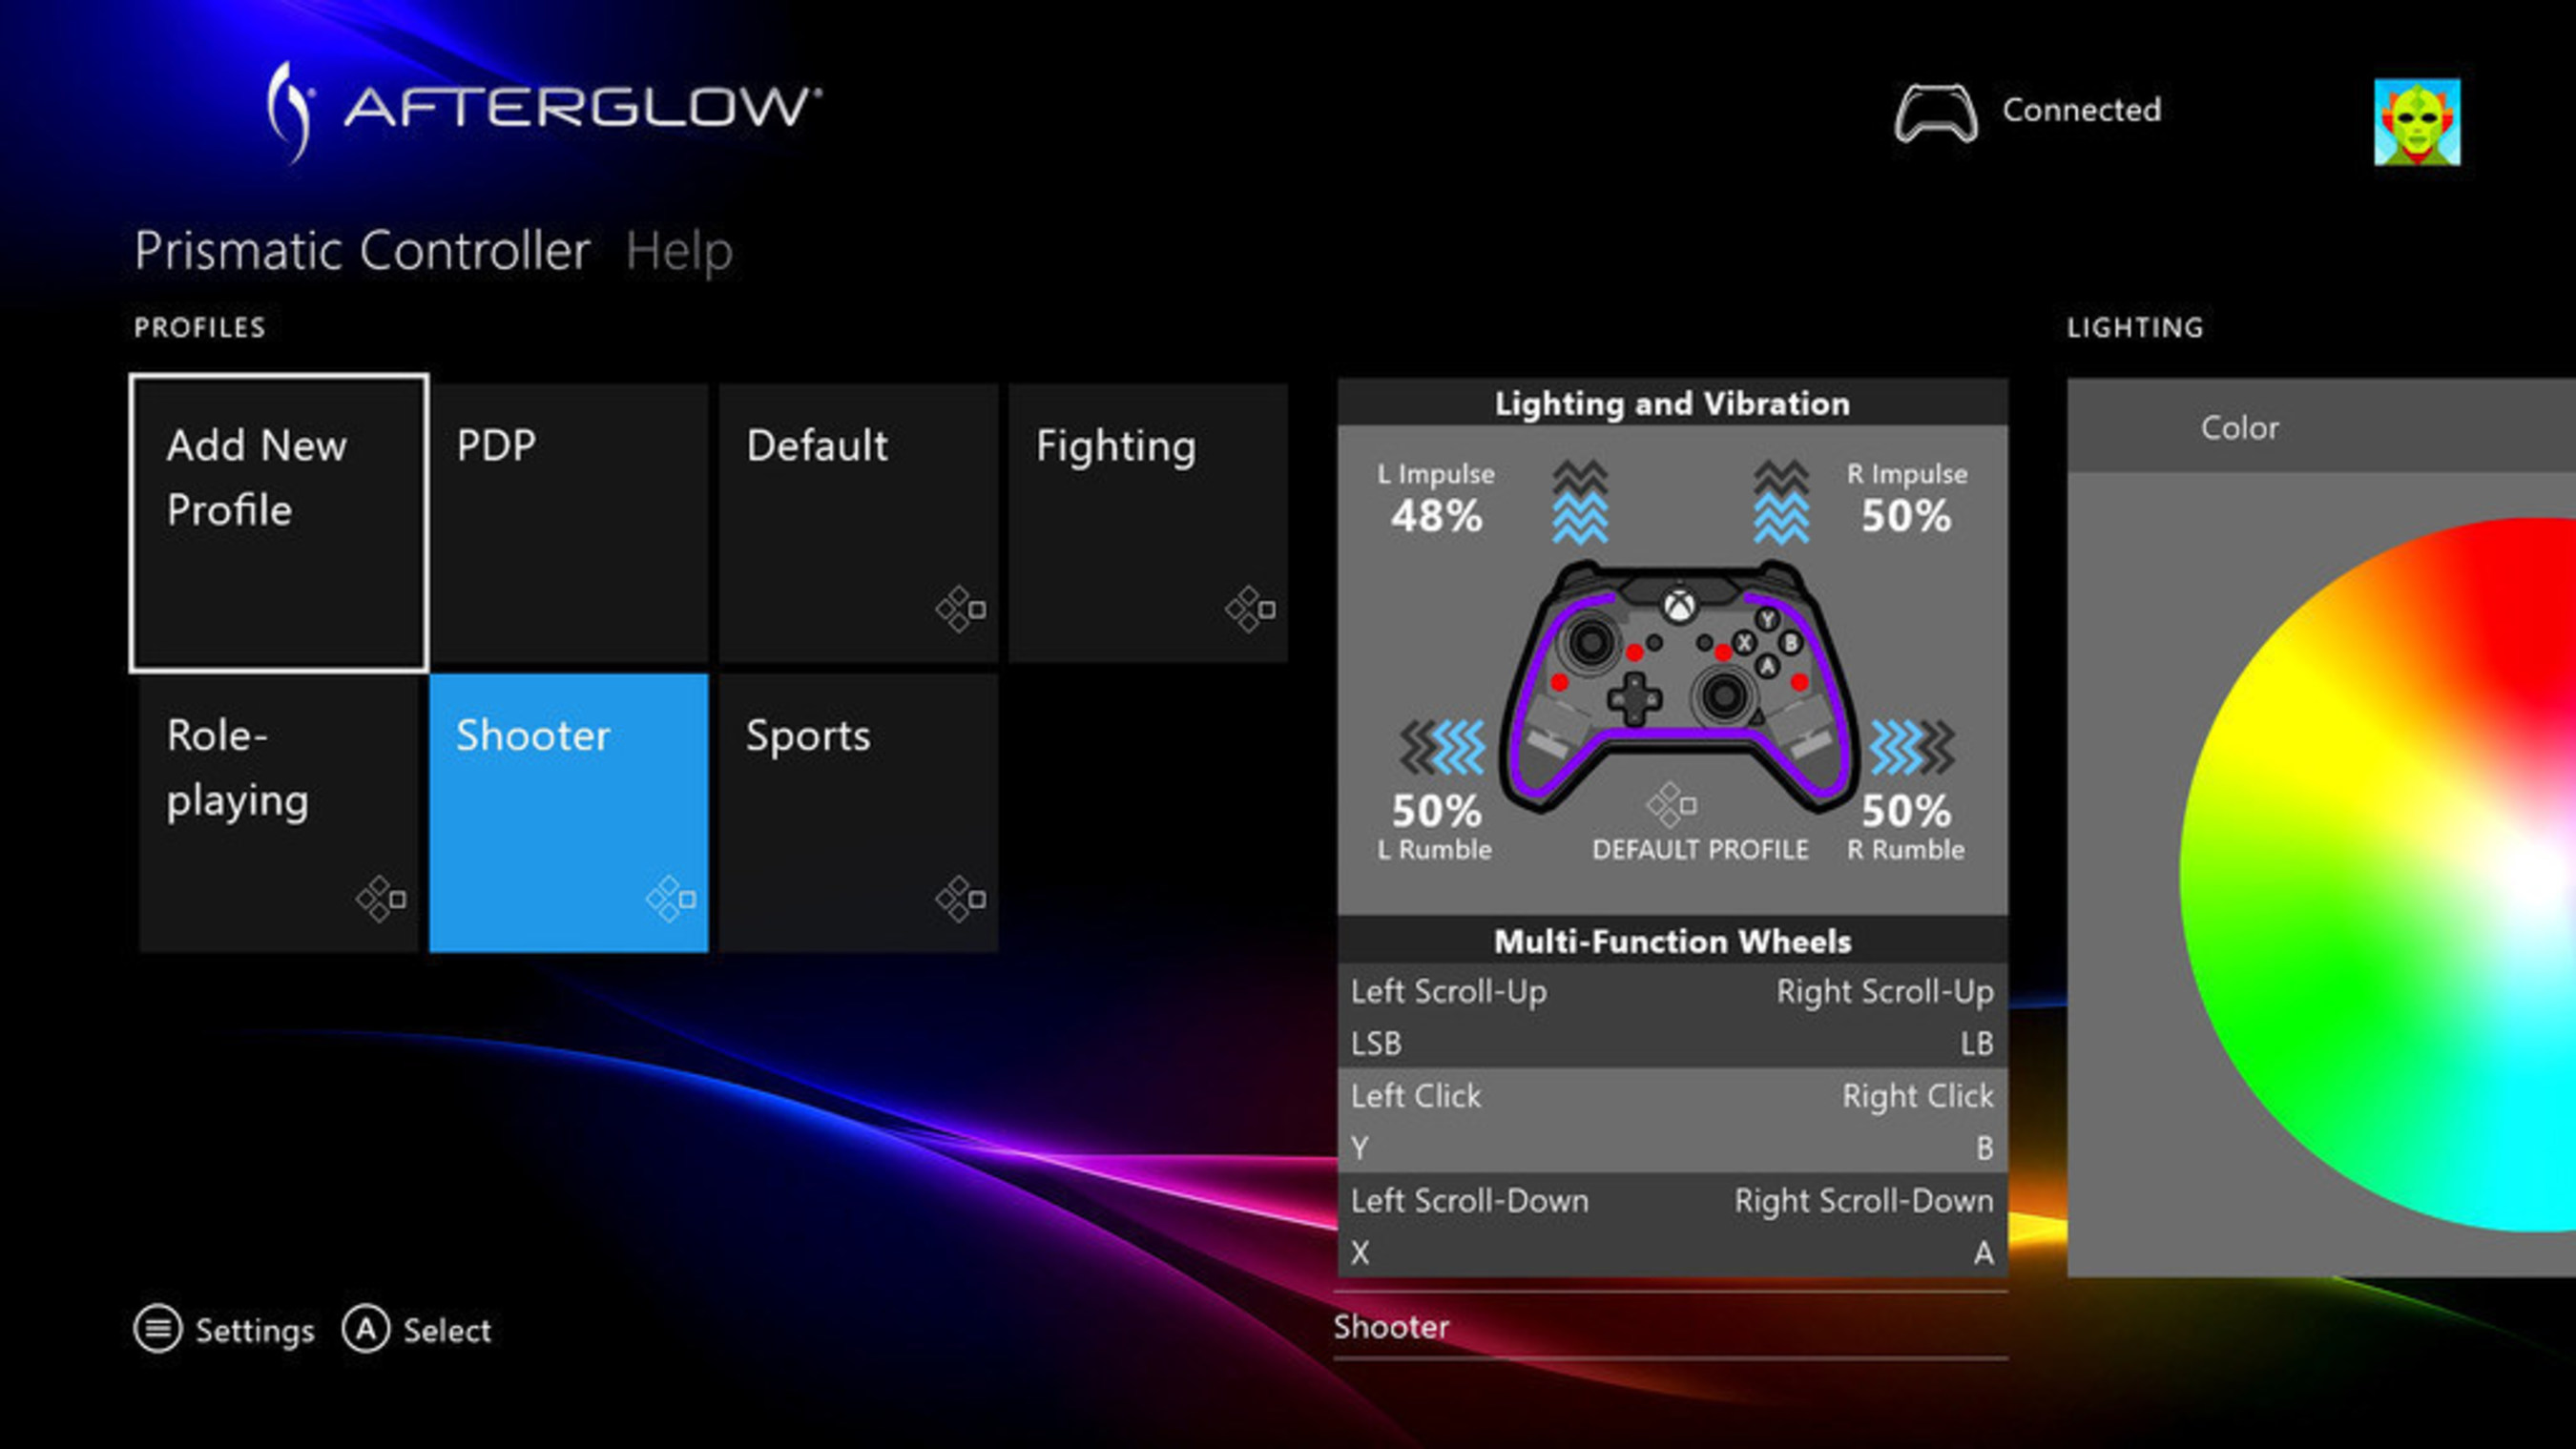 AFTERGLOW PRISMATIC XBOX ONE CONTROLLER PC DRIVER DOWNLOAD